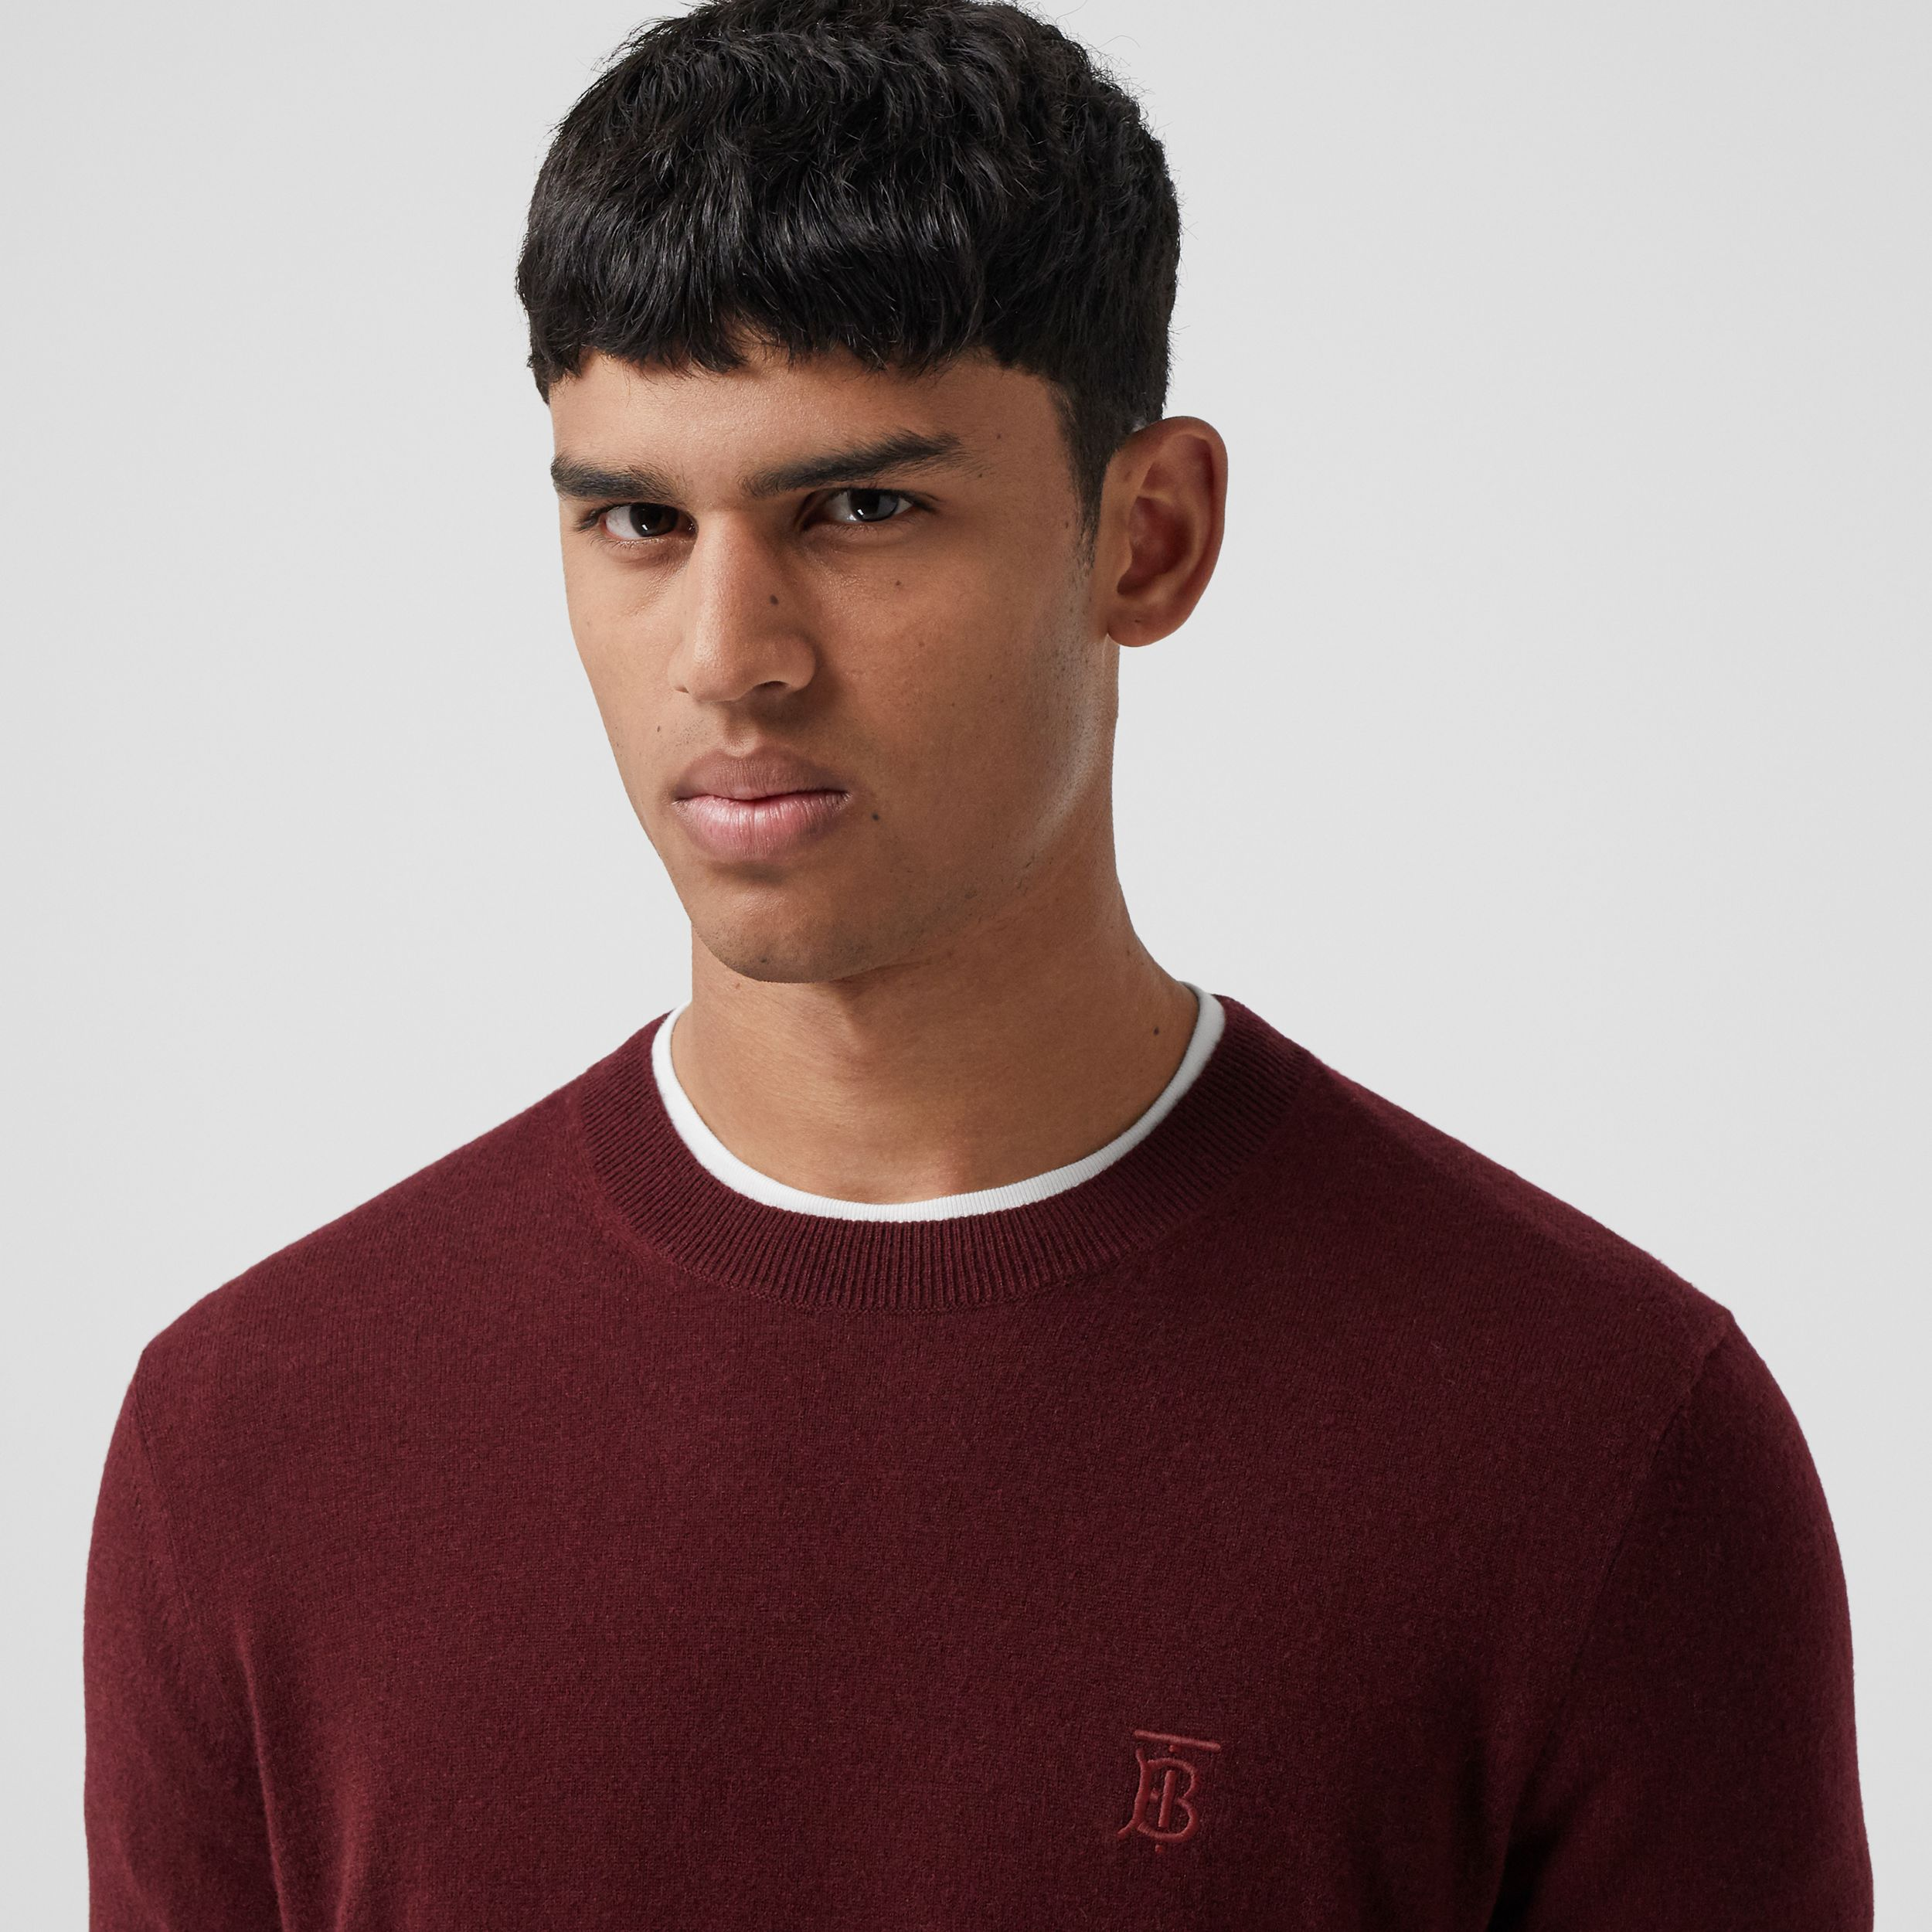 Monogram Motif Cashmere Sweater in Deep Merlot - Men | Burberry United States - 2